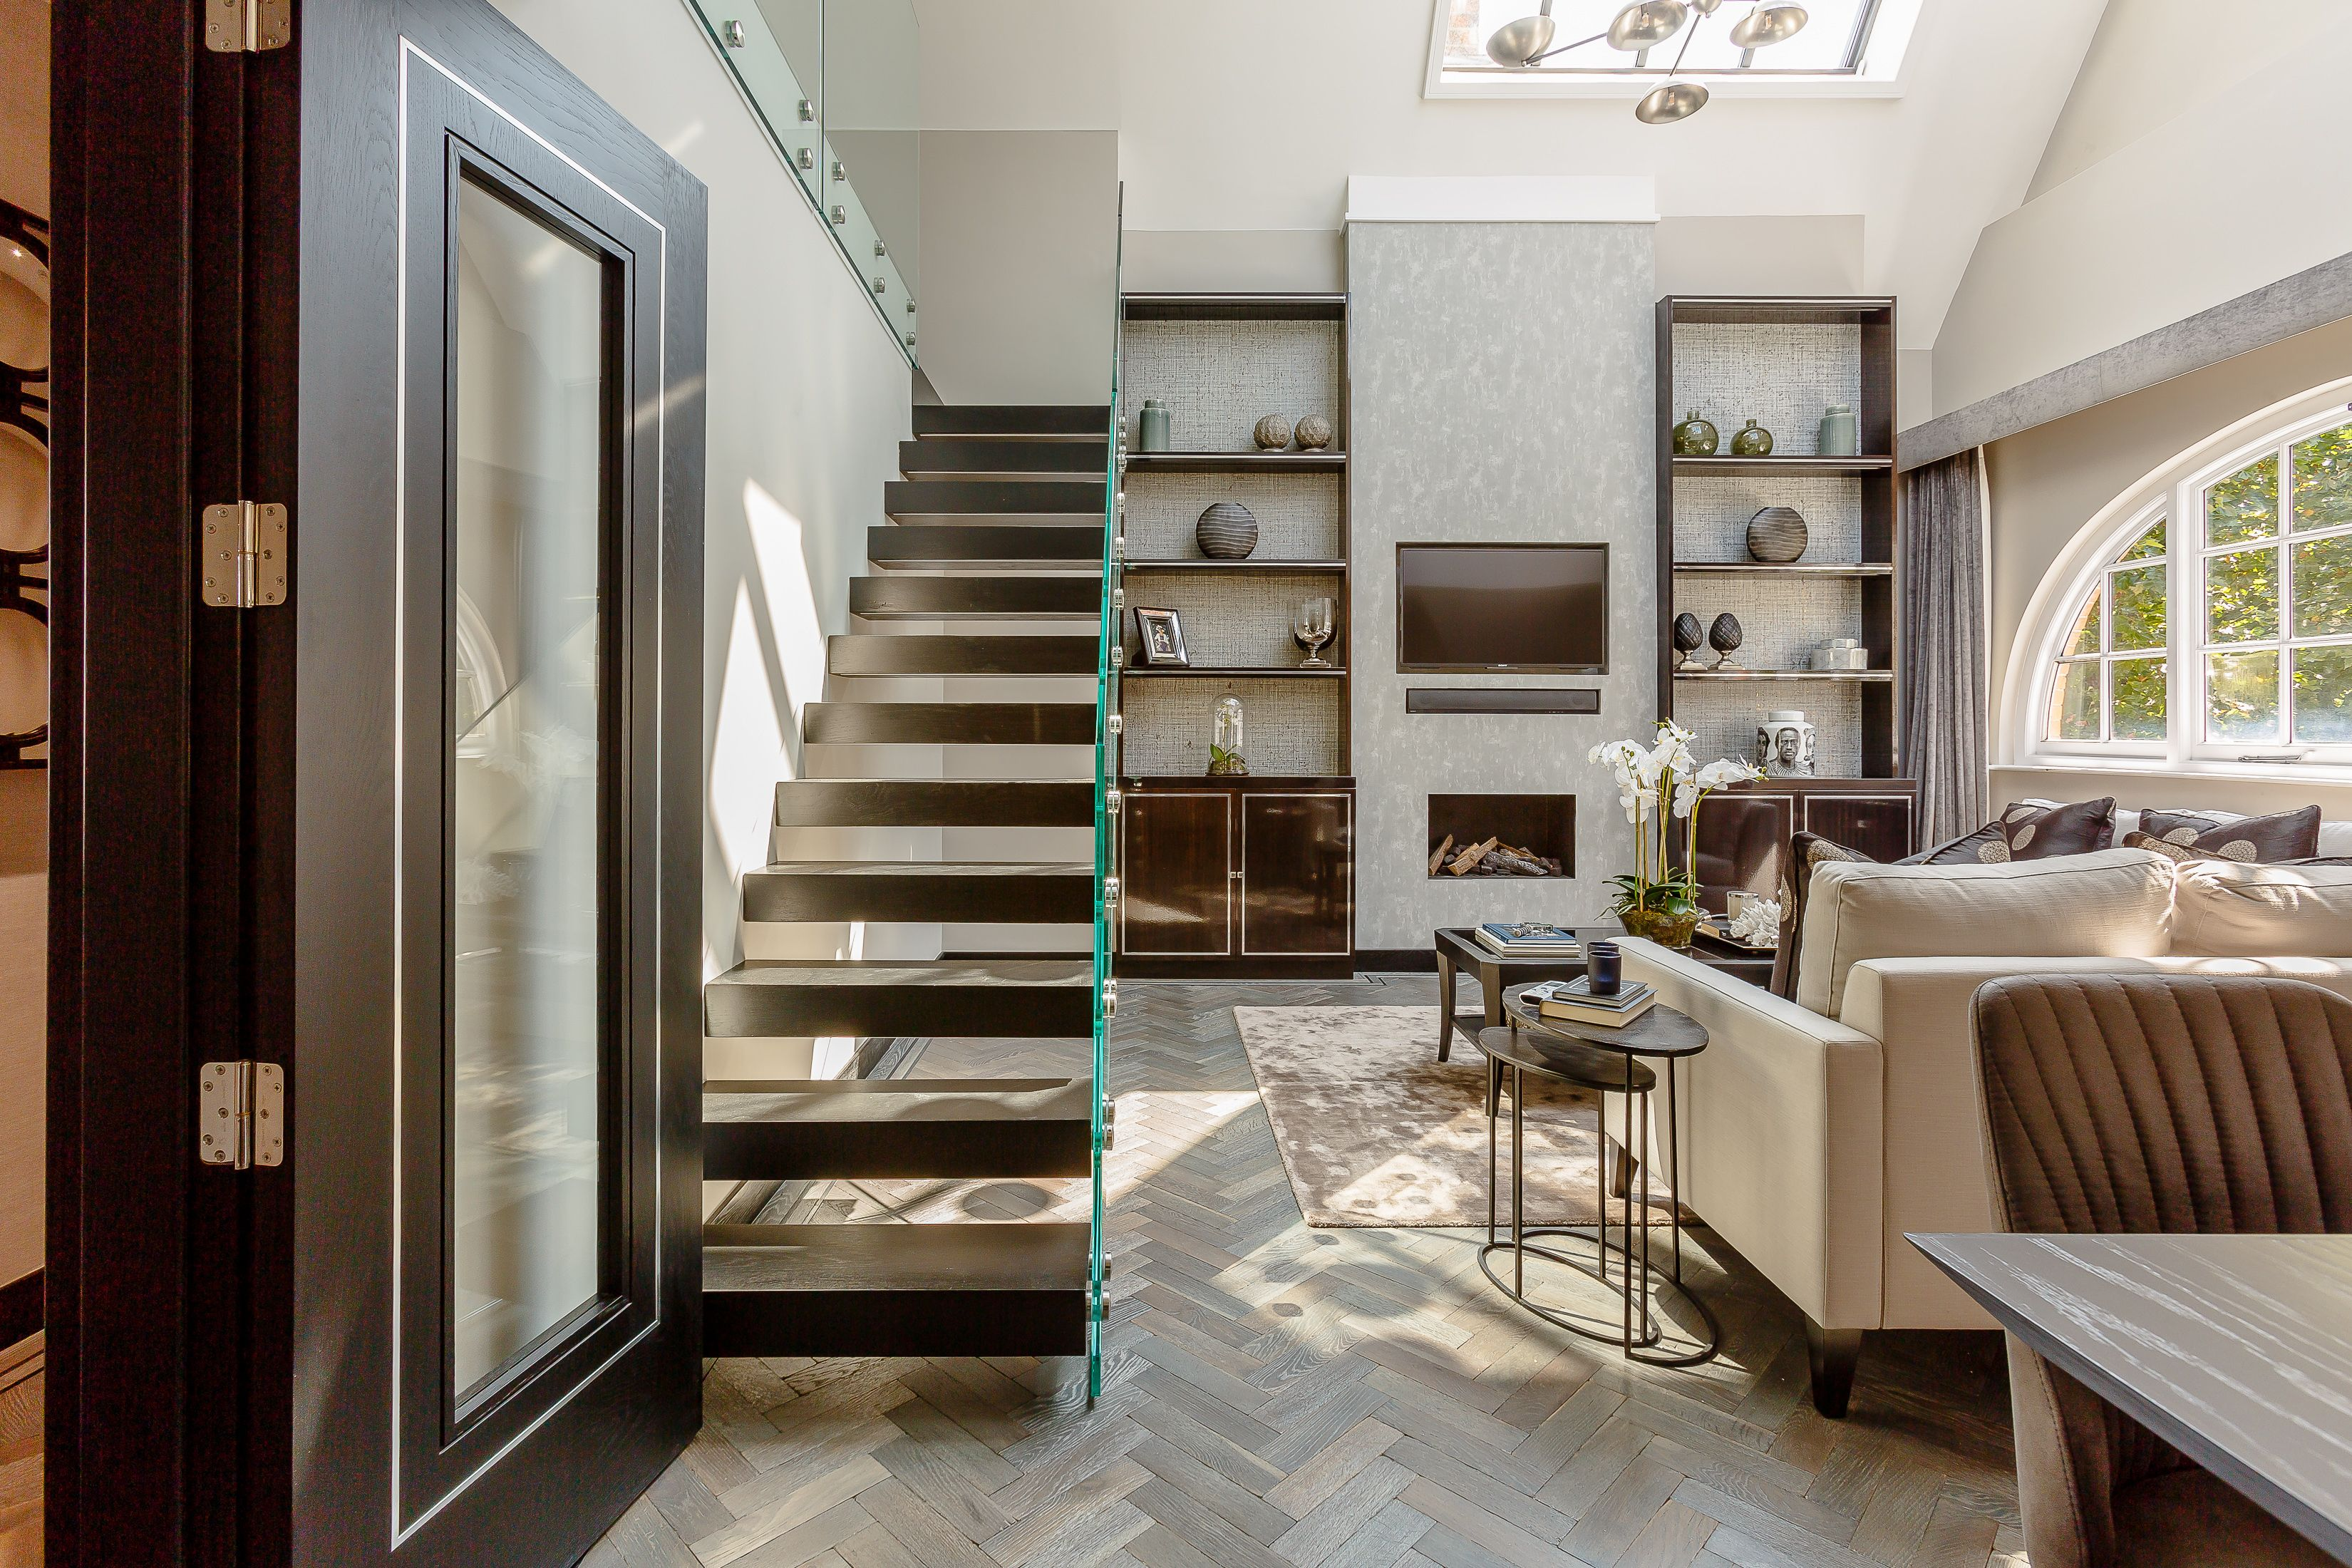 Sophisticated Urban Penthouse With Soaring Ceilings And Well Appointed Fixtures And